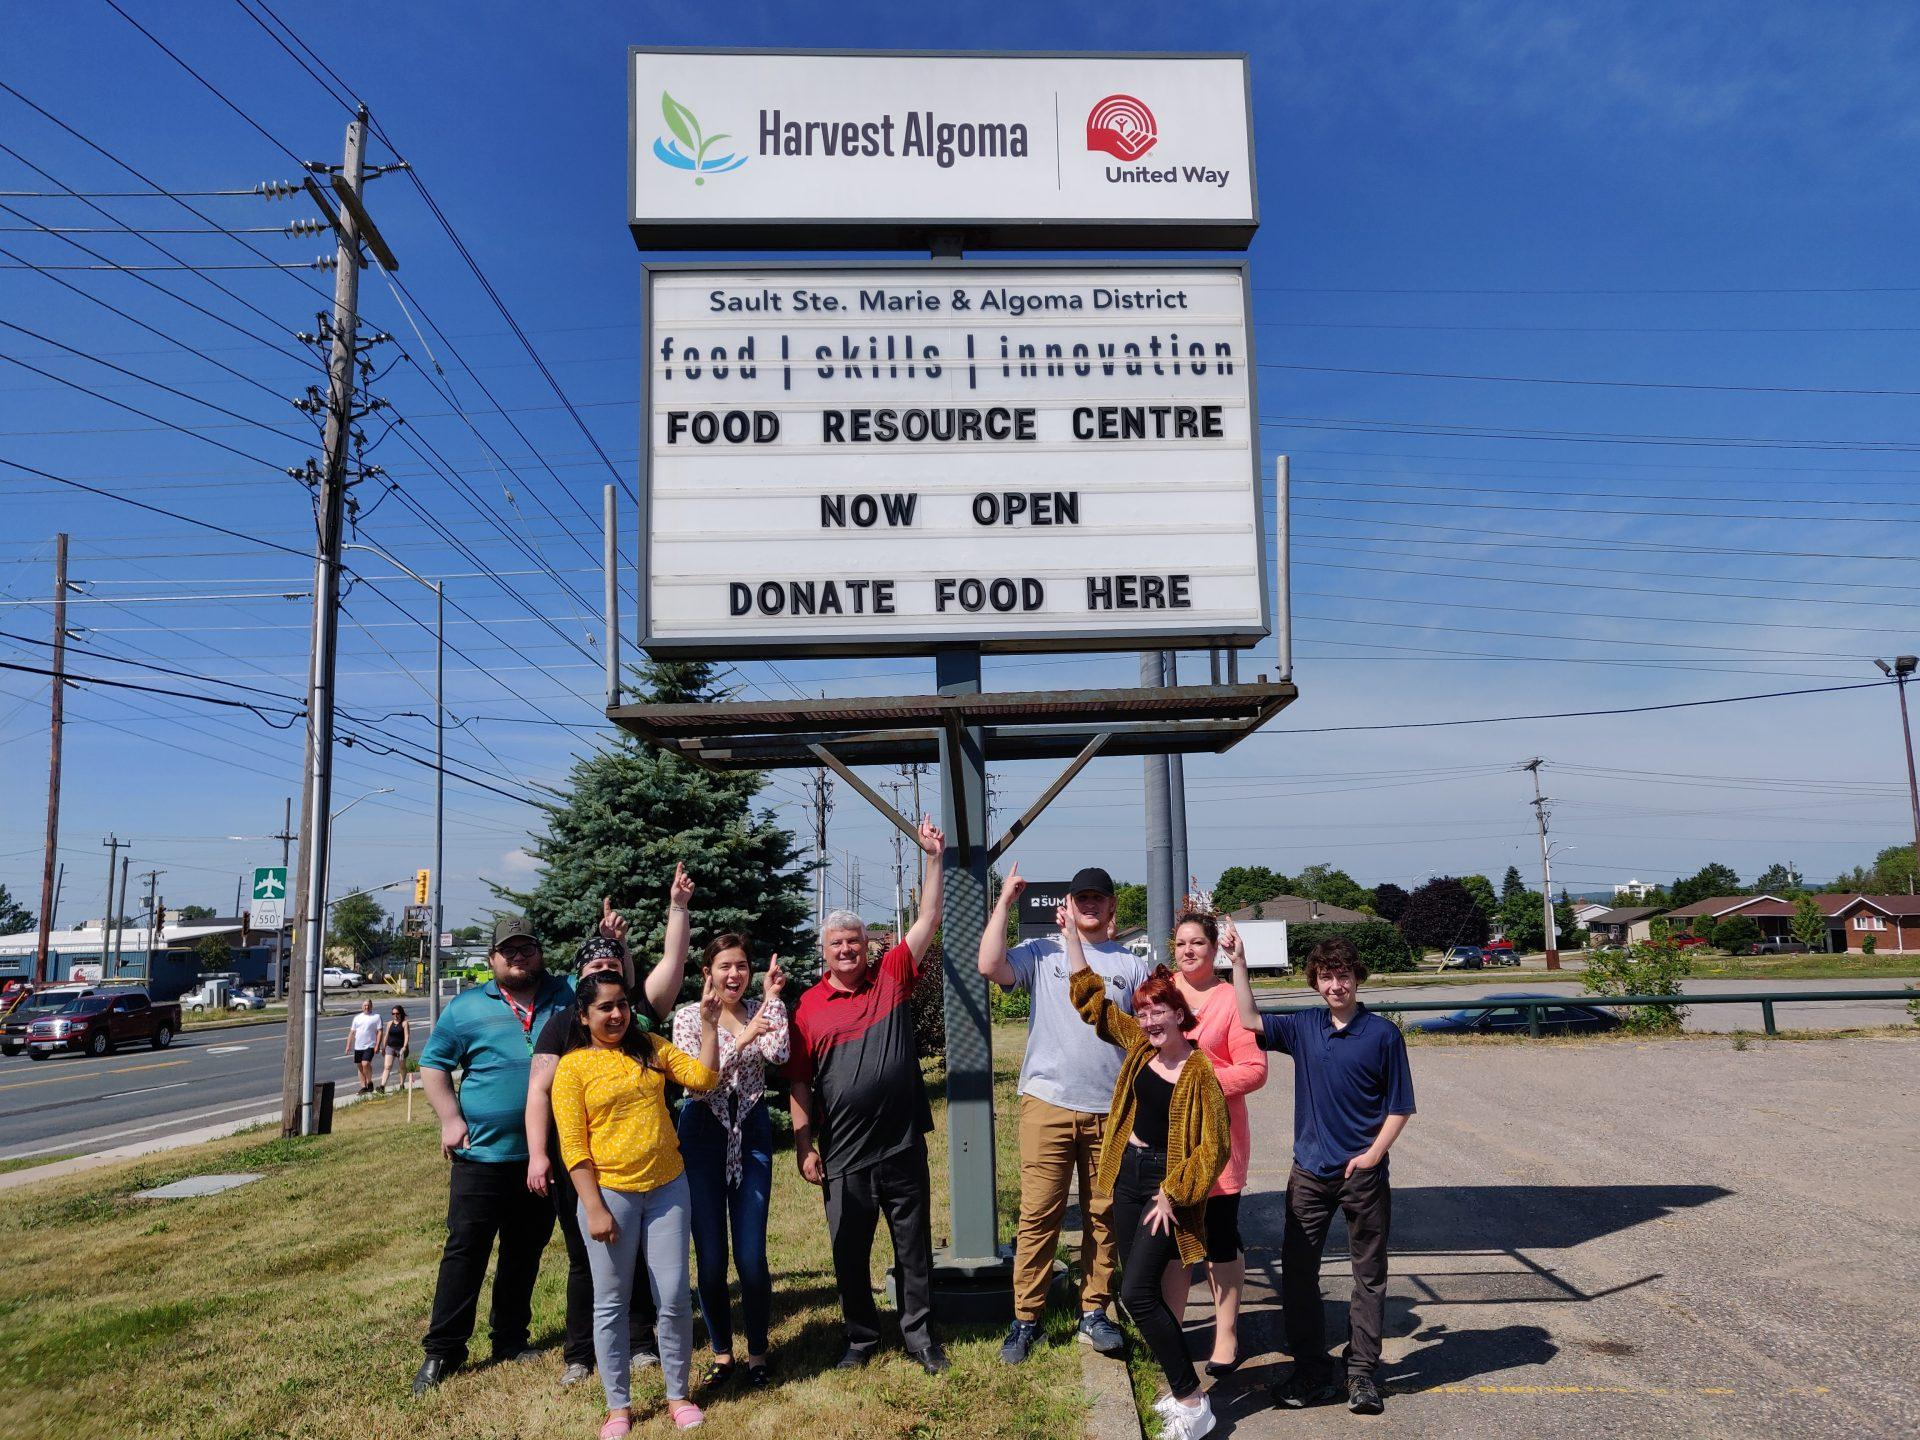 United Way's Harvest Algoma Food Resource Centre